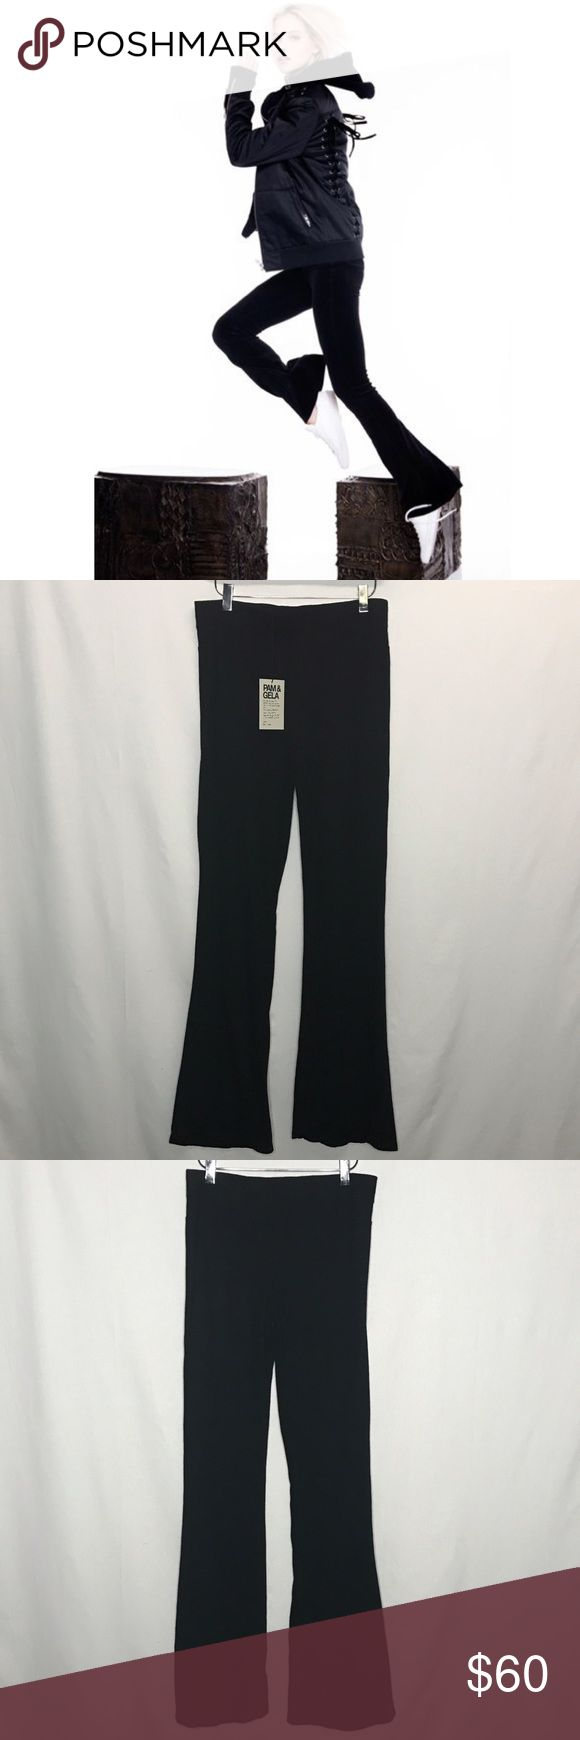 """Pam & Gela Flip Flop Flare Pants Cute and comfy Pam & Gela cotton lounge pants. Wear them out and about with wedge heels, clogs or sandals or wear them around the house.  Elastic waist and flare bottom. Inseam 33"""" Pam & Gela Pants Boot Cut & Flare"""